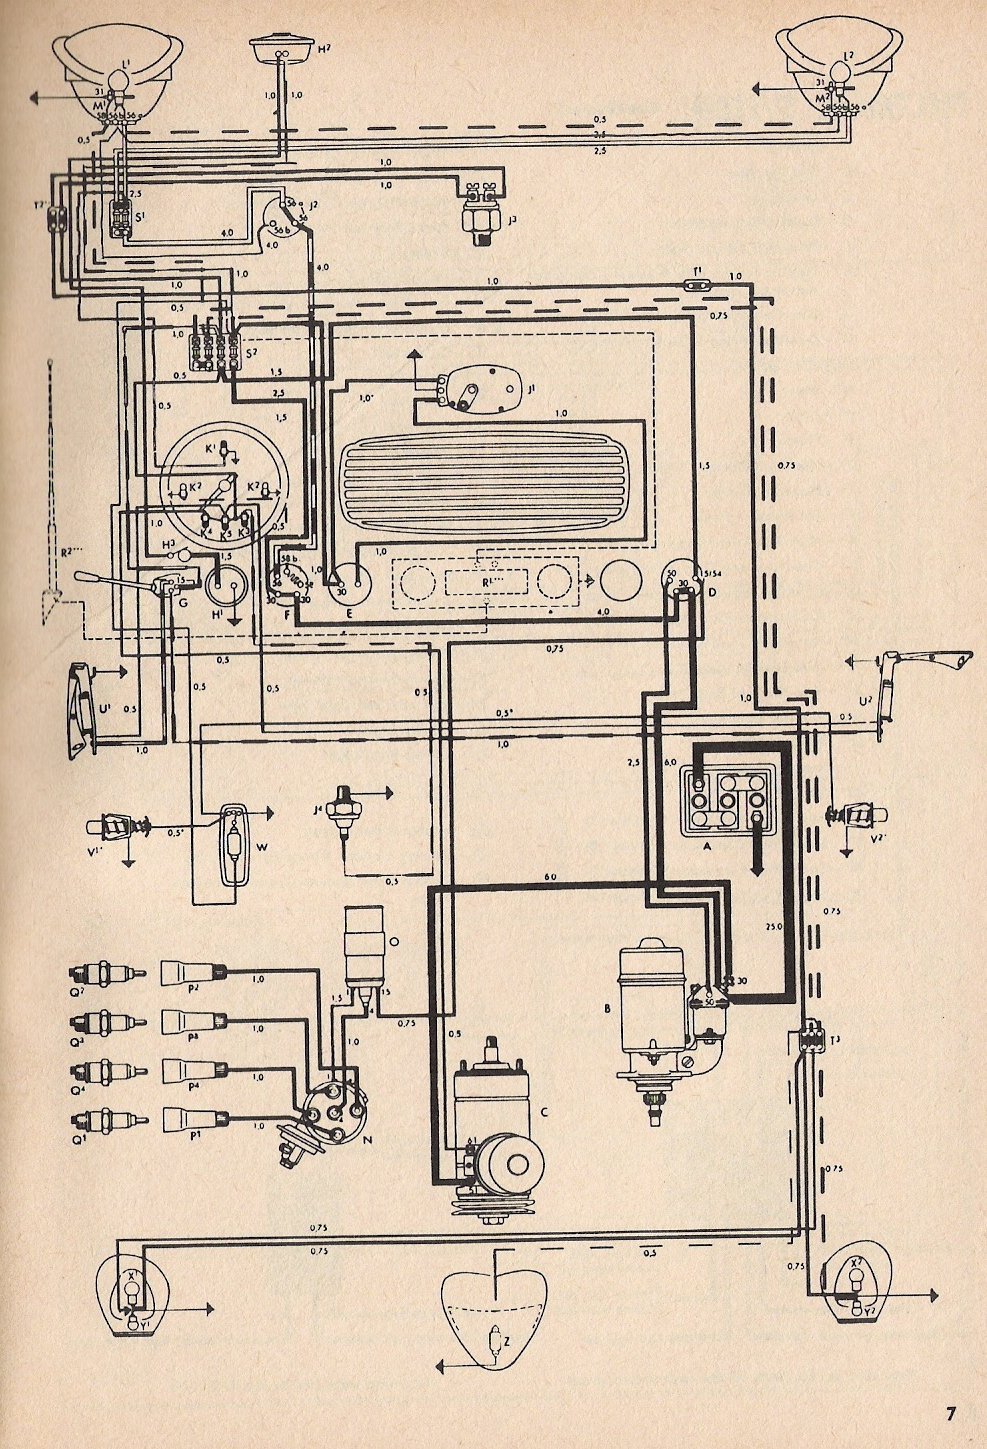 hight resolution of alston a007 wiring diagram wiring diagram origin wiring a non computer 700r4 alston a007 wiring diagram